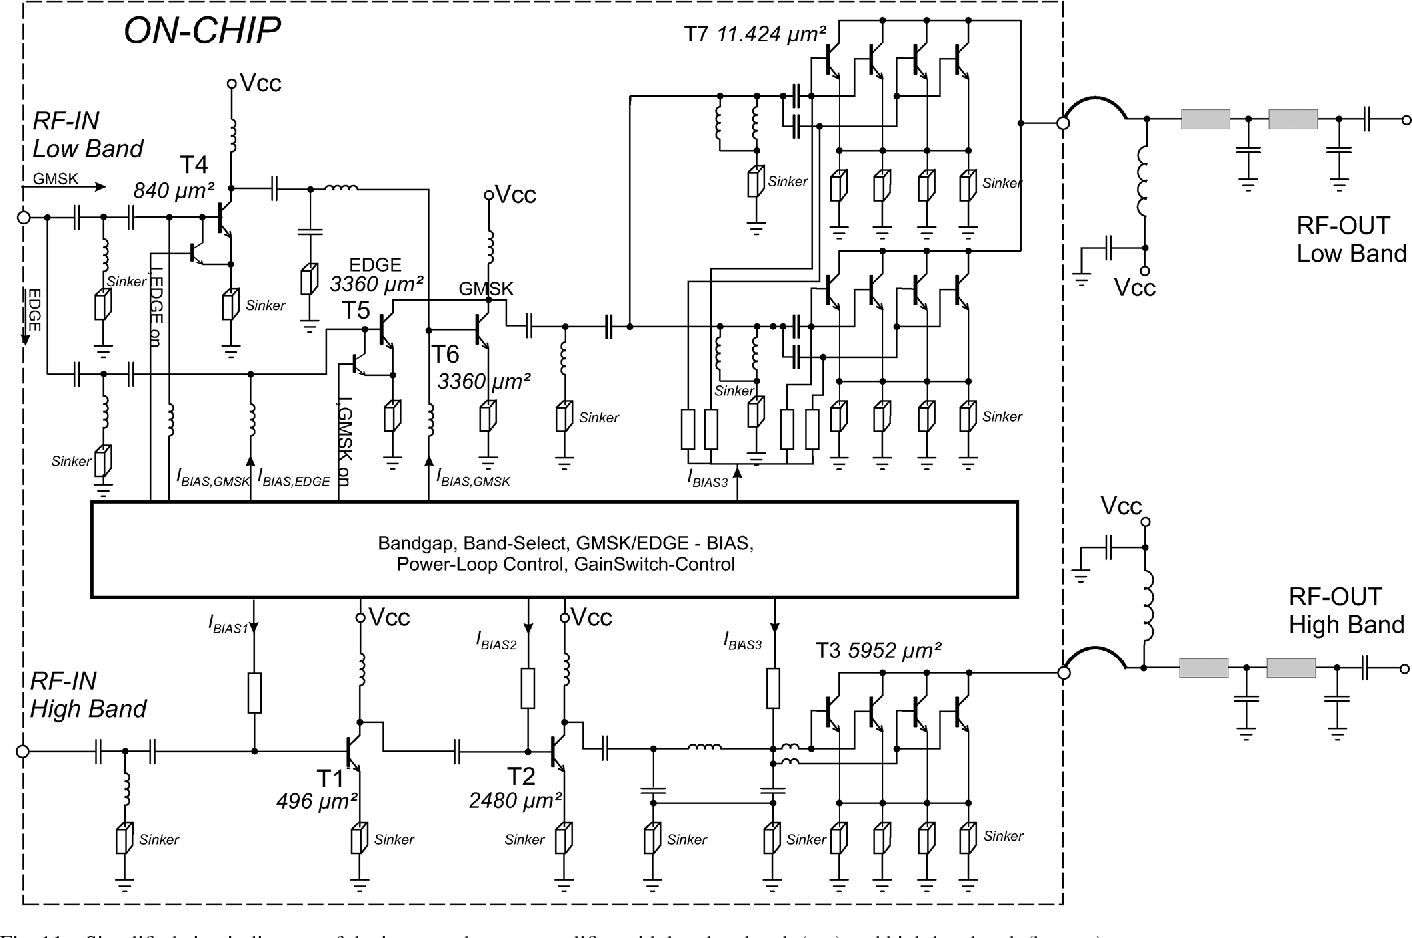 Fig. 11. Simplified circuit diagram of the integrated power amplifier with low-band path (top) and high-band path (bottom).